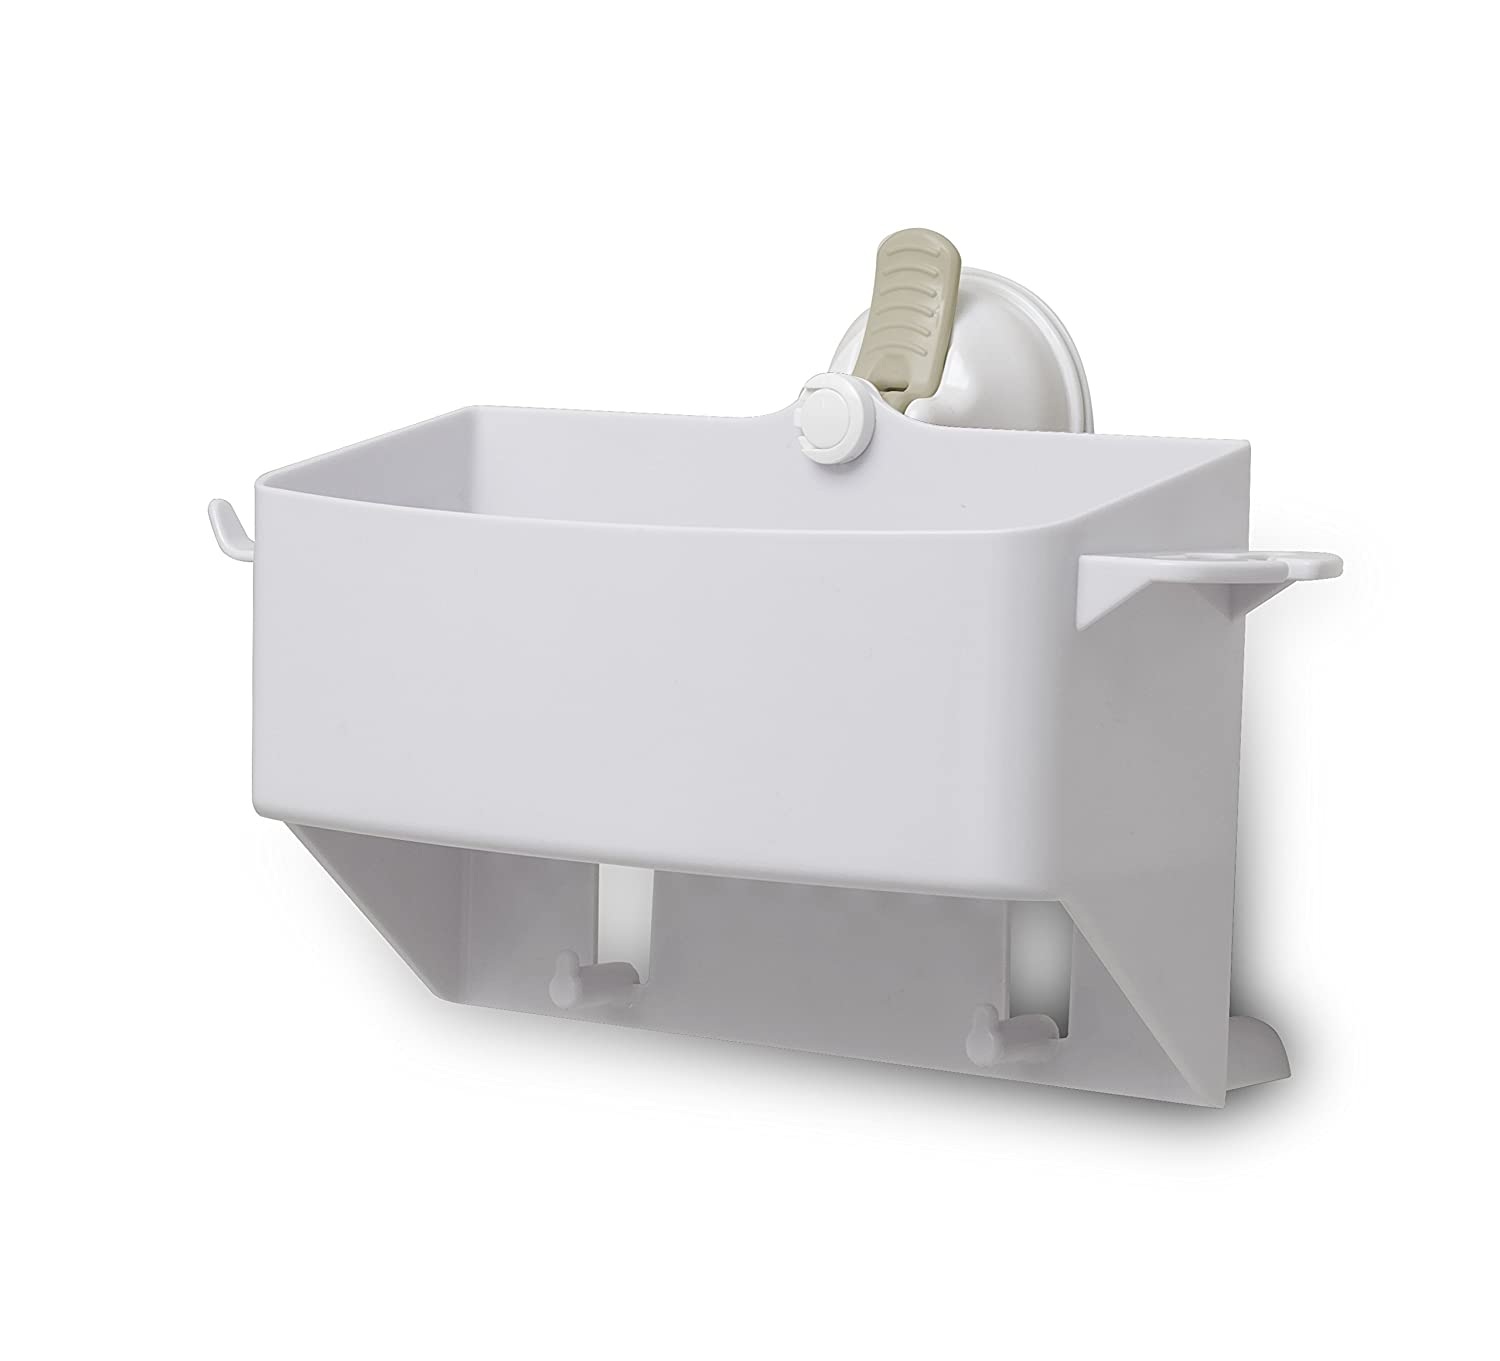 Changing Lifestyles Safe-Er-Grip Tub Organizer, White, 1 Count Mommy's Helper Inc. 12221